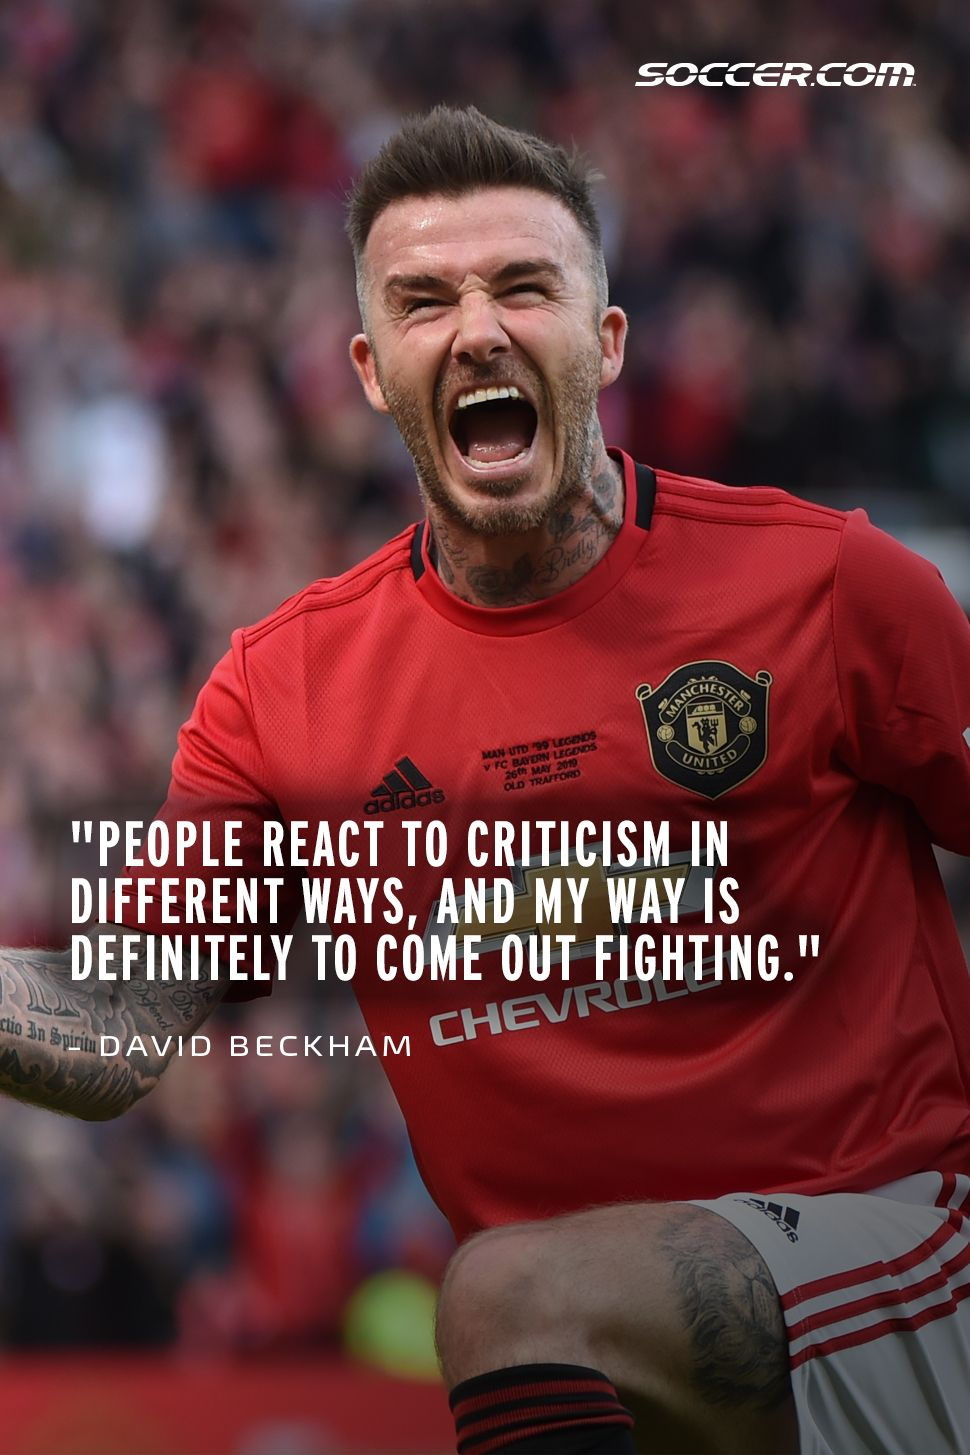 Best Inspirational Soccer Quotes Soccer Com In 2020 Soccer Quotes Motivational Soccer Quotes Inspirational Soccer Quotes